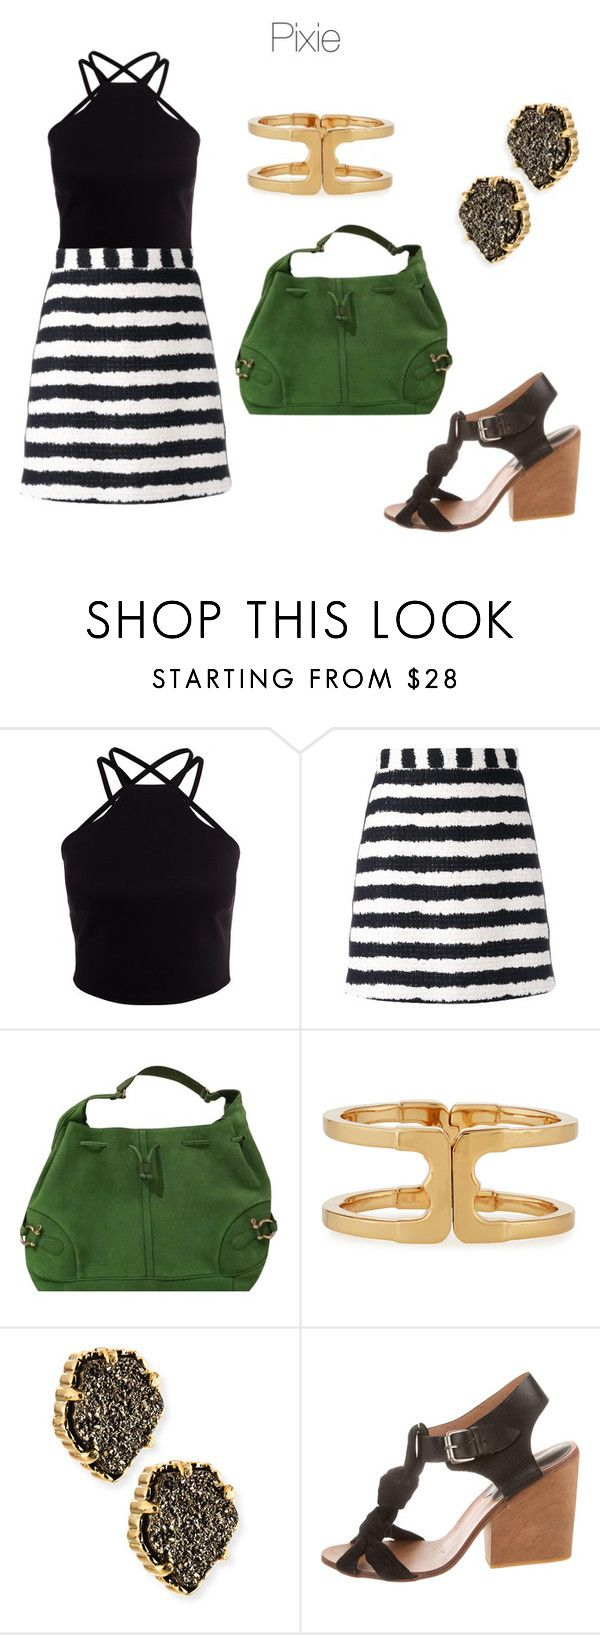 """""""Style taxonomy: Pixie"""" by skugge ❤ liked on Polyvore featuring MSGM, Burberry, Tory Burch, Kendra Scott and A Détacher"""